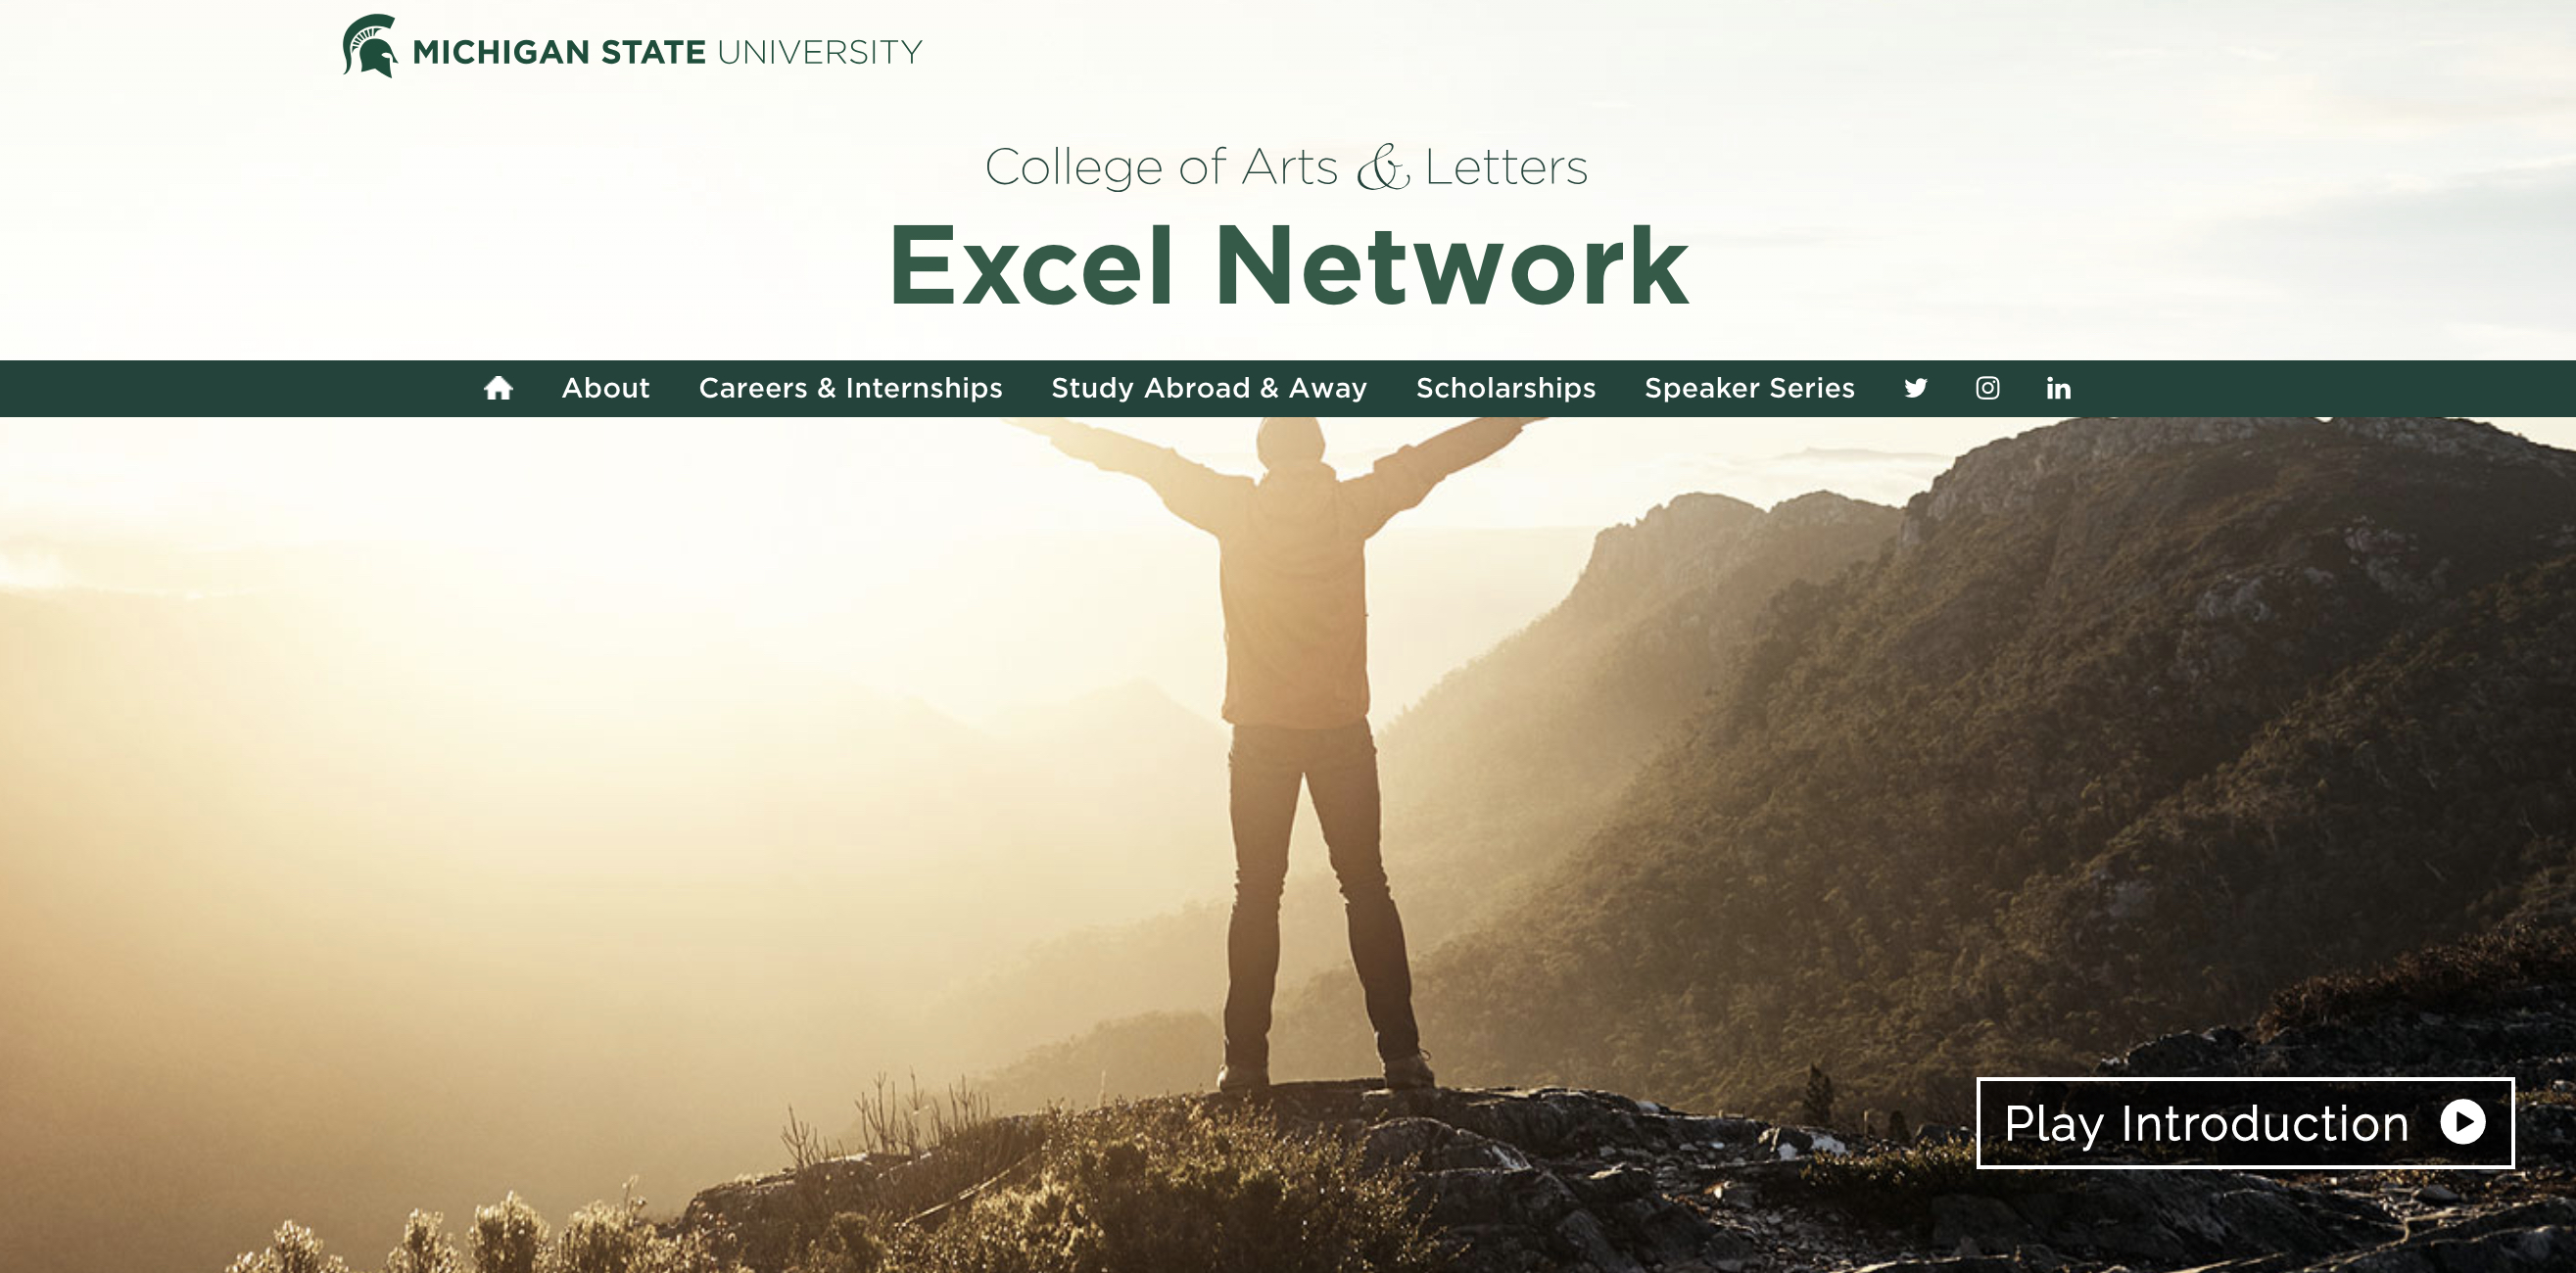 Final homepage of the MSU College of Arts and Letters The Excel Network